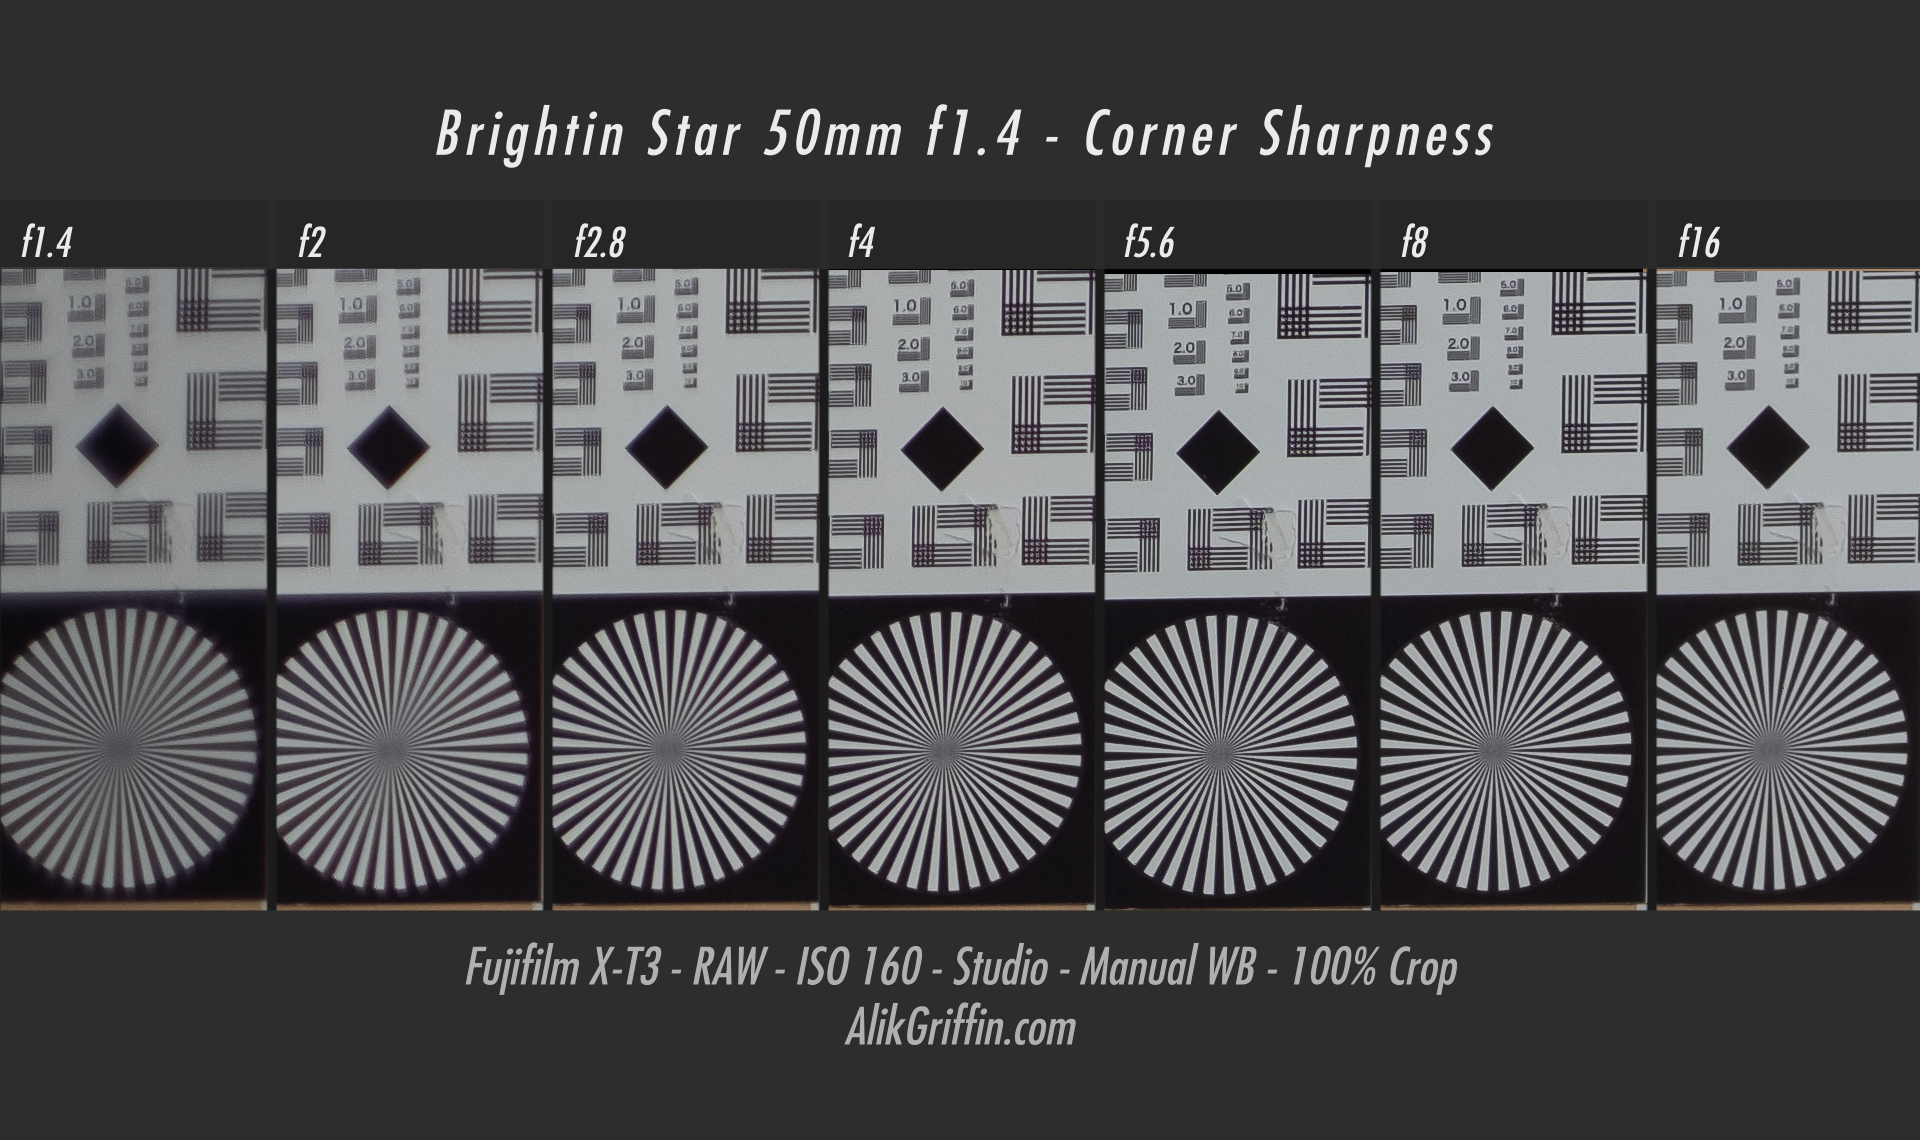 Brightin Star 50mm f1.4 Corner Sharpness Chart